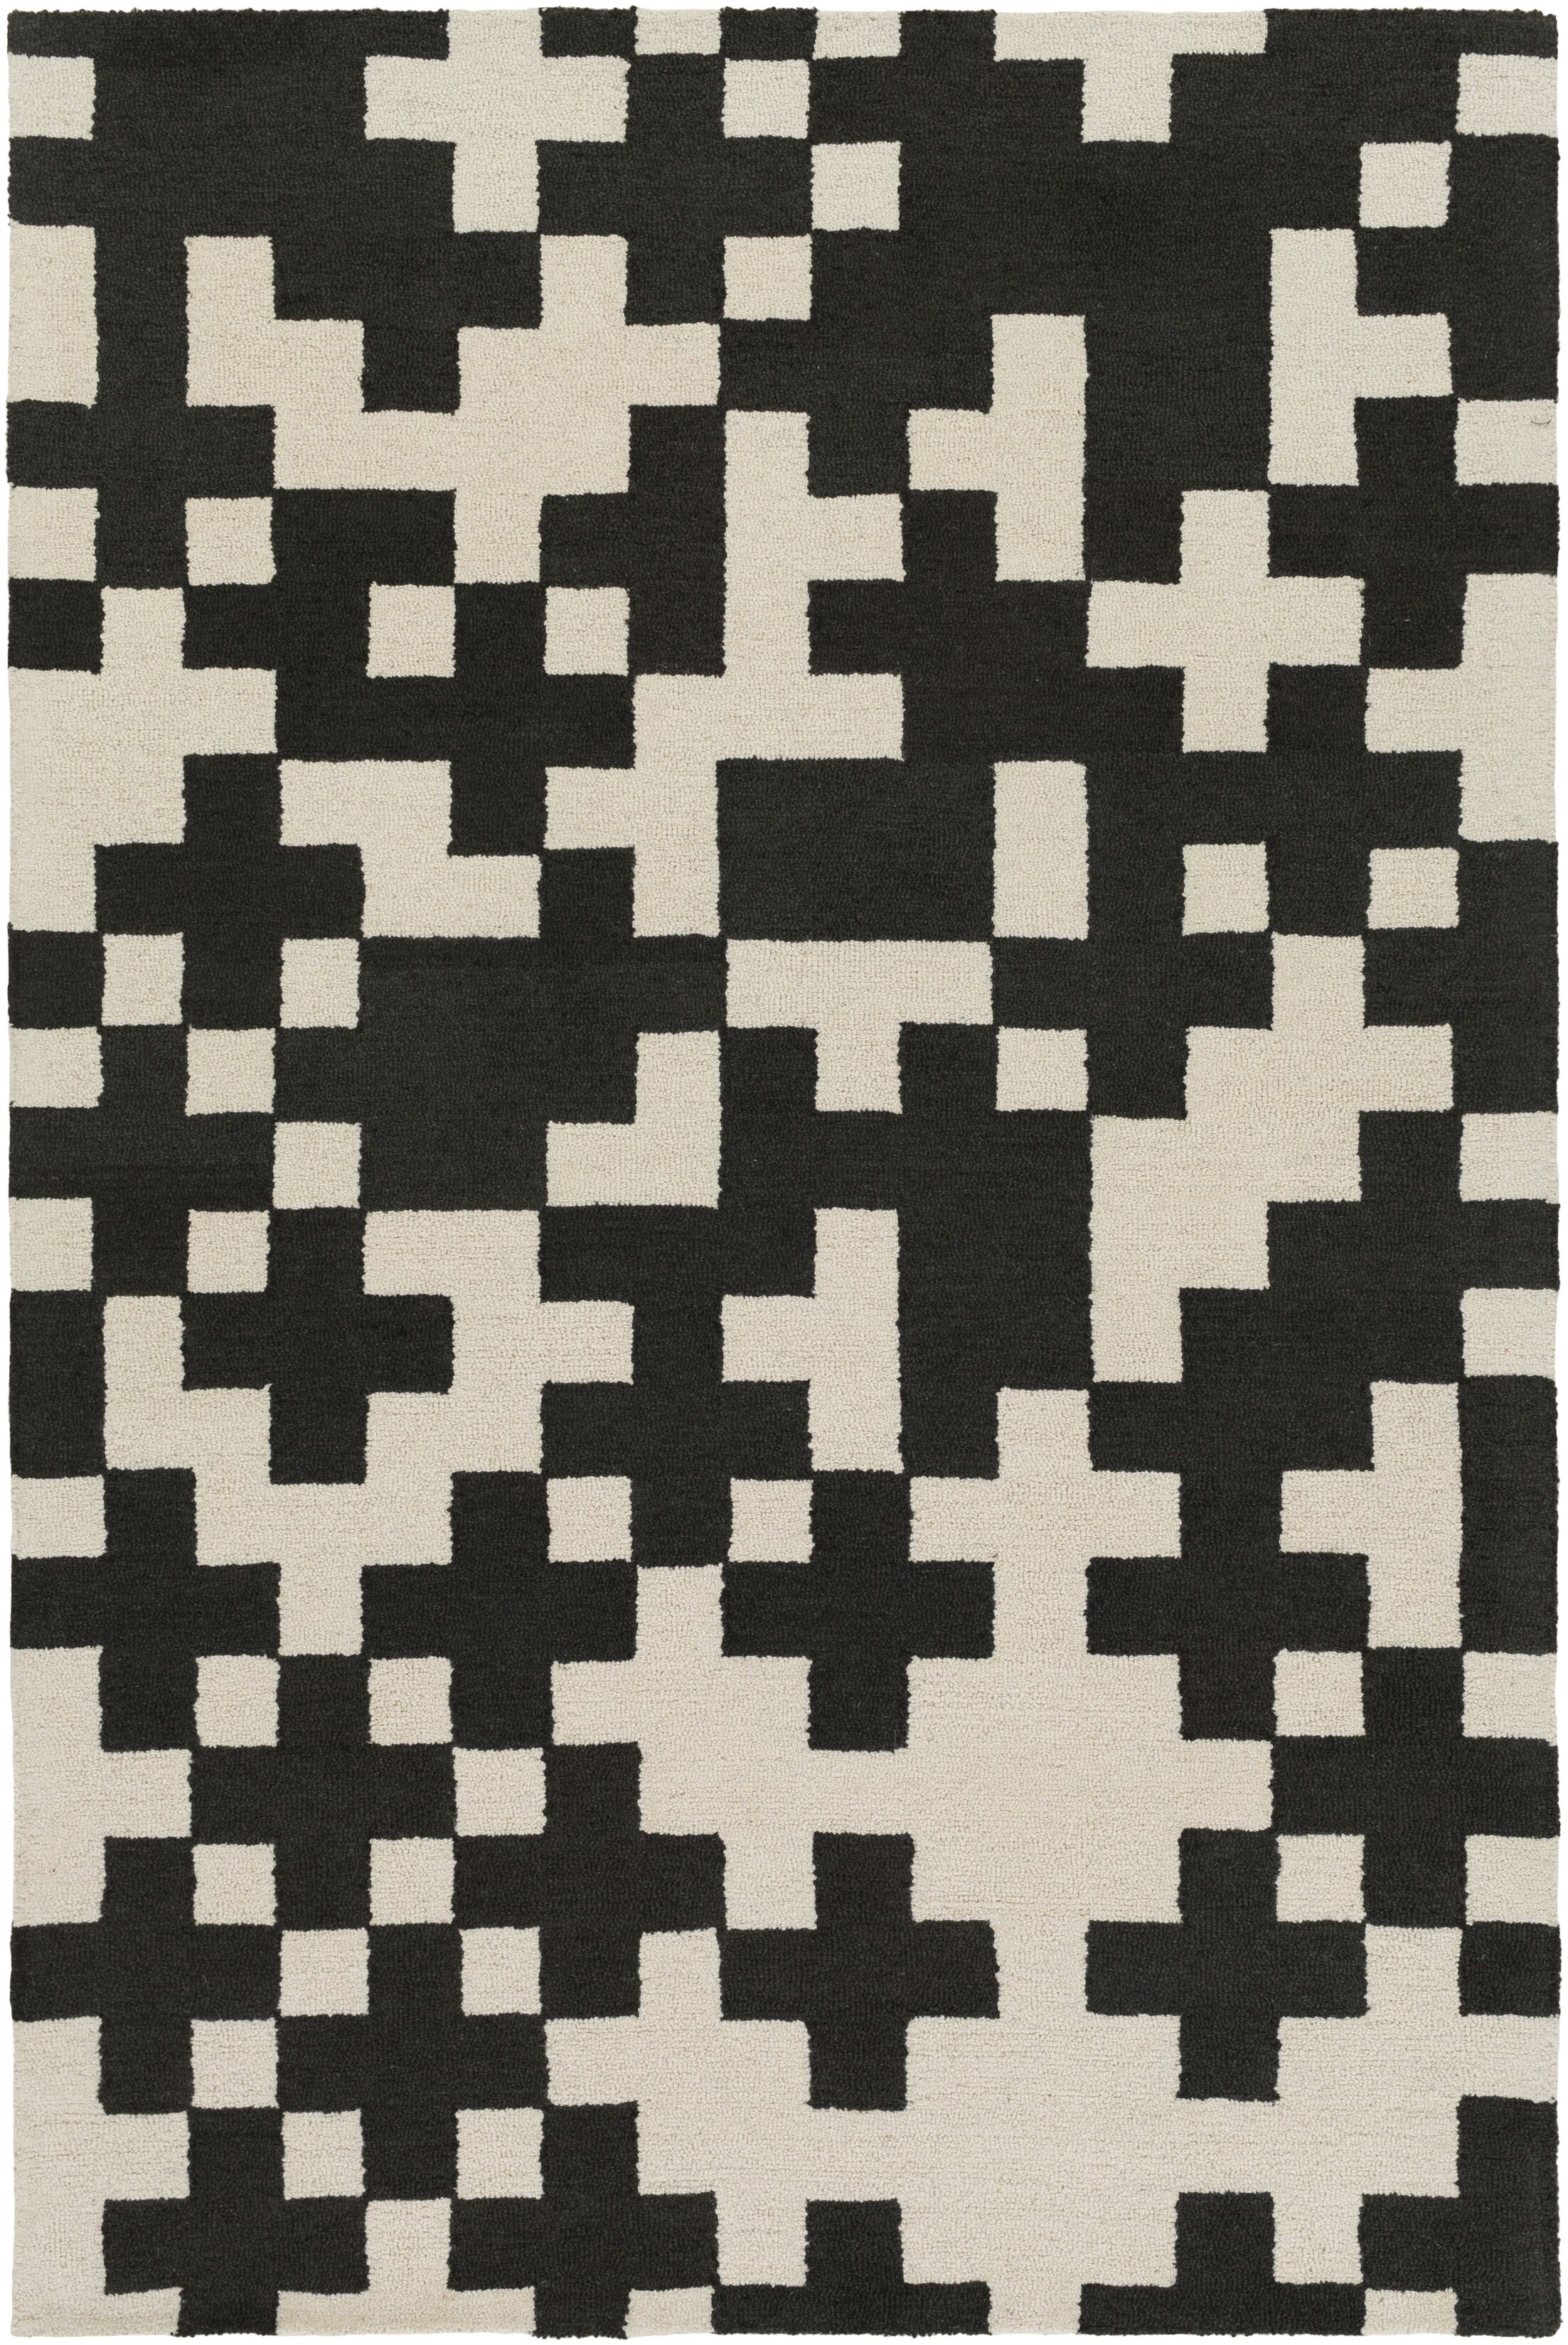 Youngman Hand-Crafted Black/Cream Area Rug Rug Size: Rectangle 8' x 11'